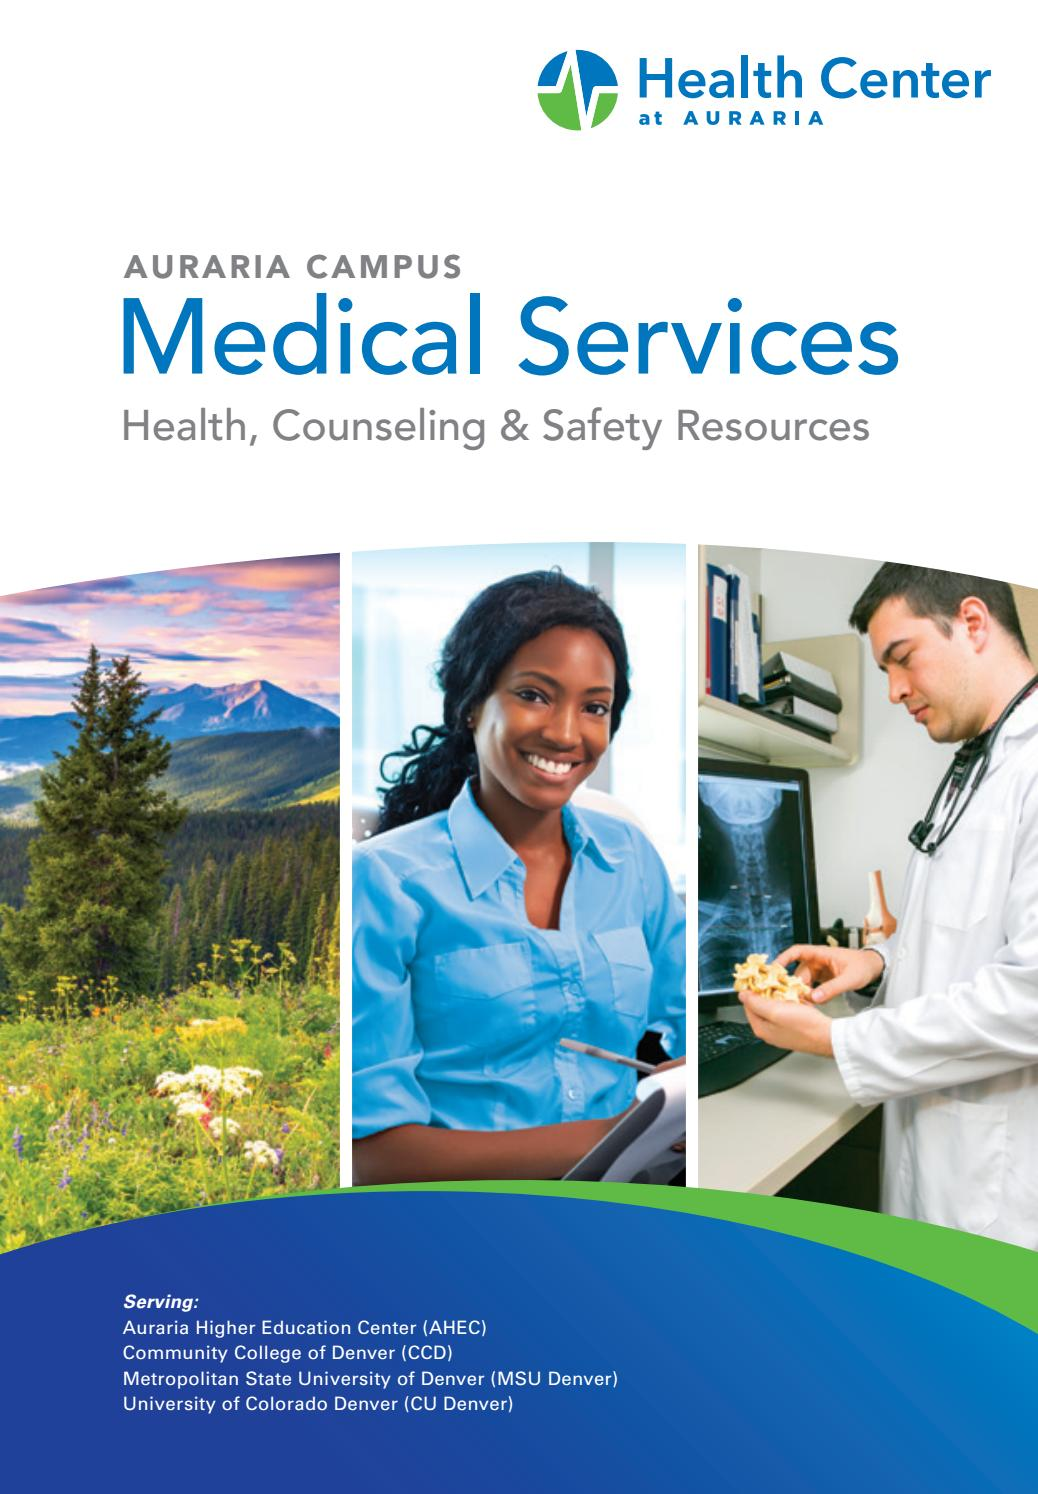 Health Center At Auraria Medical Services Brochure By Health